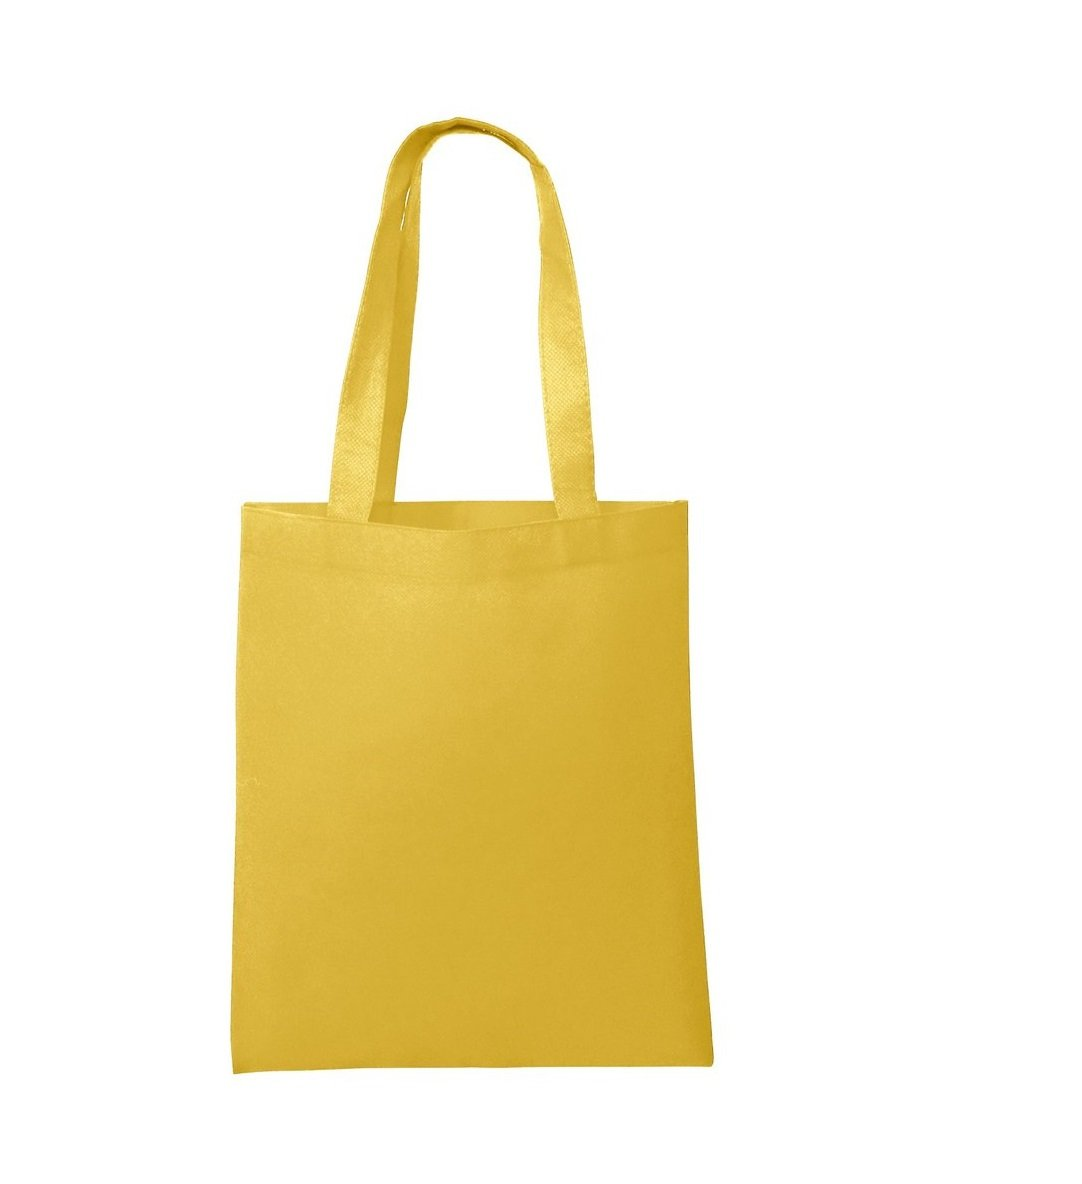 cb14615fe378 Eco Friendly Promotional Non-Woven Tote Bags, Wholesale Low Price Reusable  Promo Bags, Size: 13\